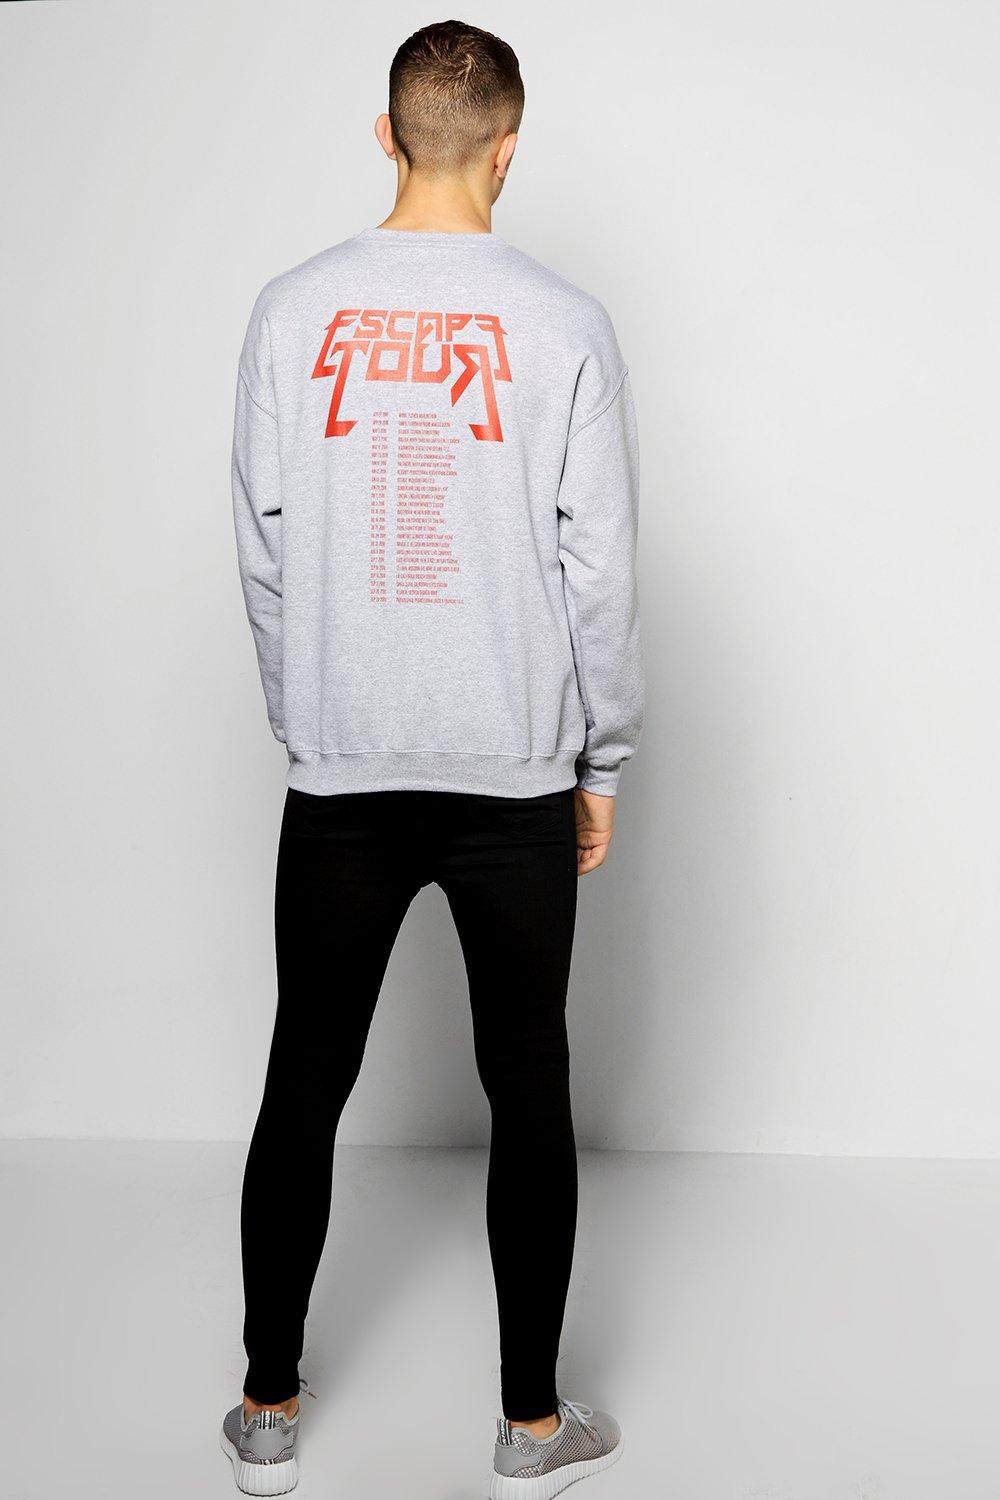 Oversized Escape Tour Sweatshirt